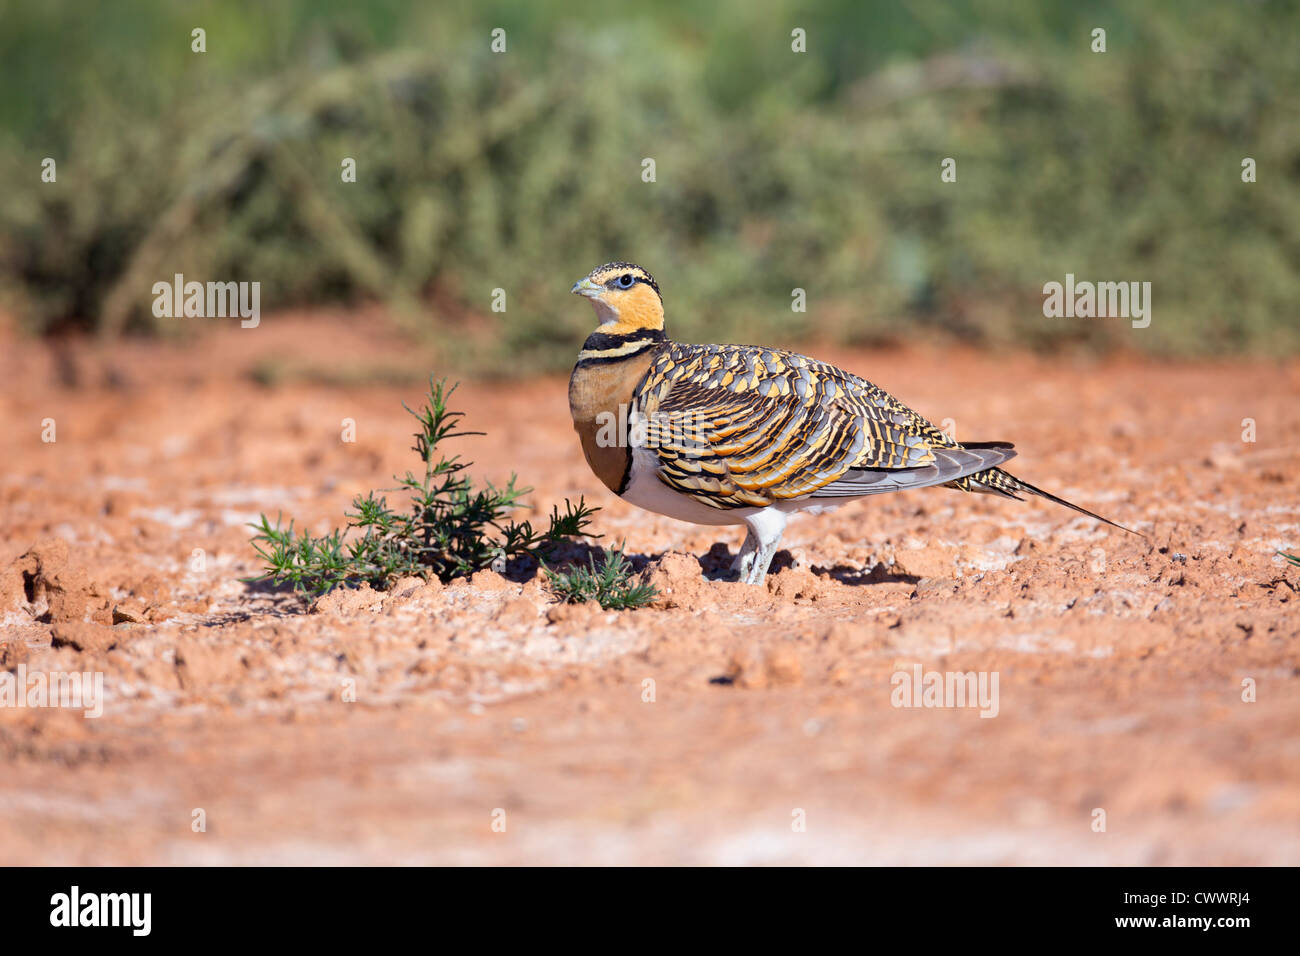 Pin Tailed Sandgrouse; Pterocles alchata; Spain; summer - Stock Image